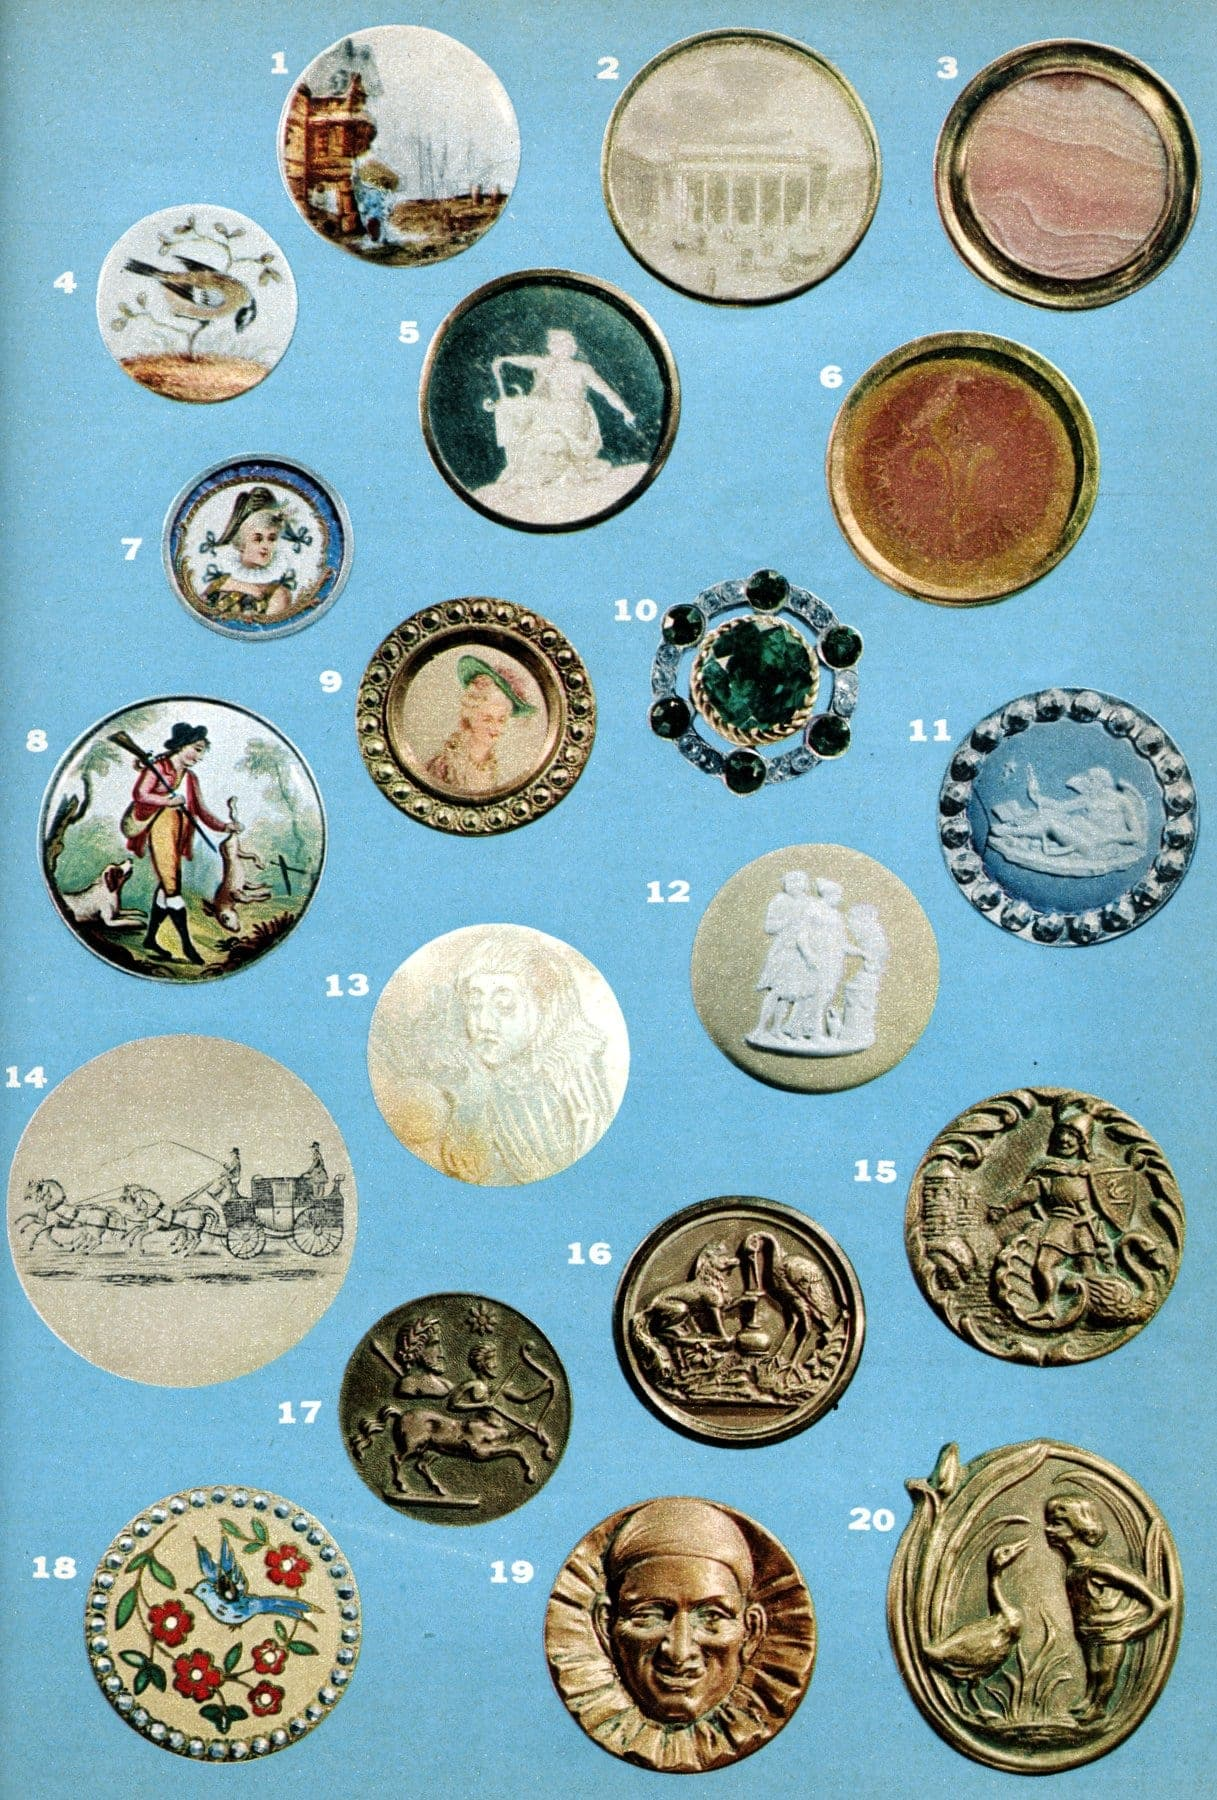 Collecting vintage and antique buttons (1955)